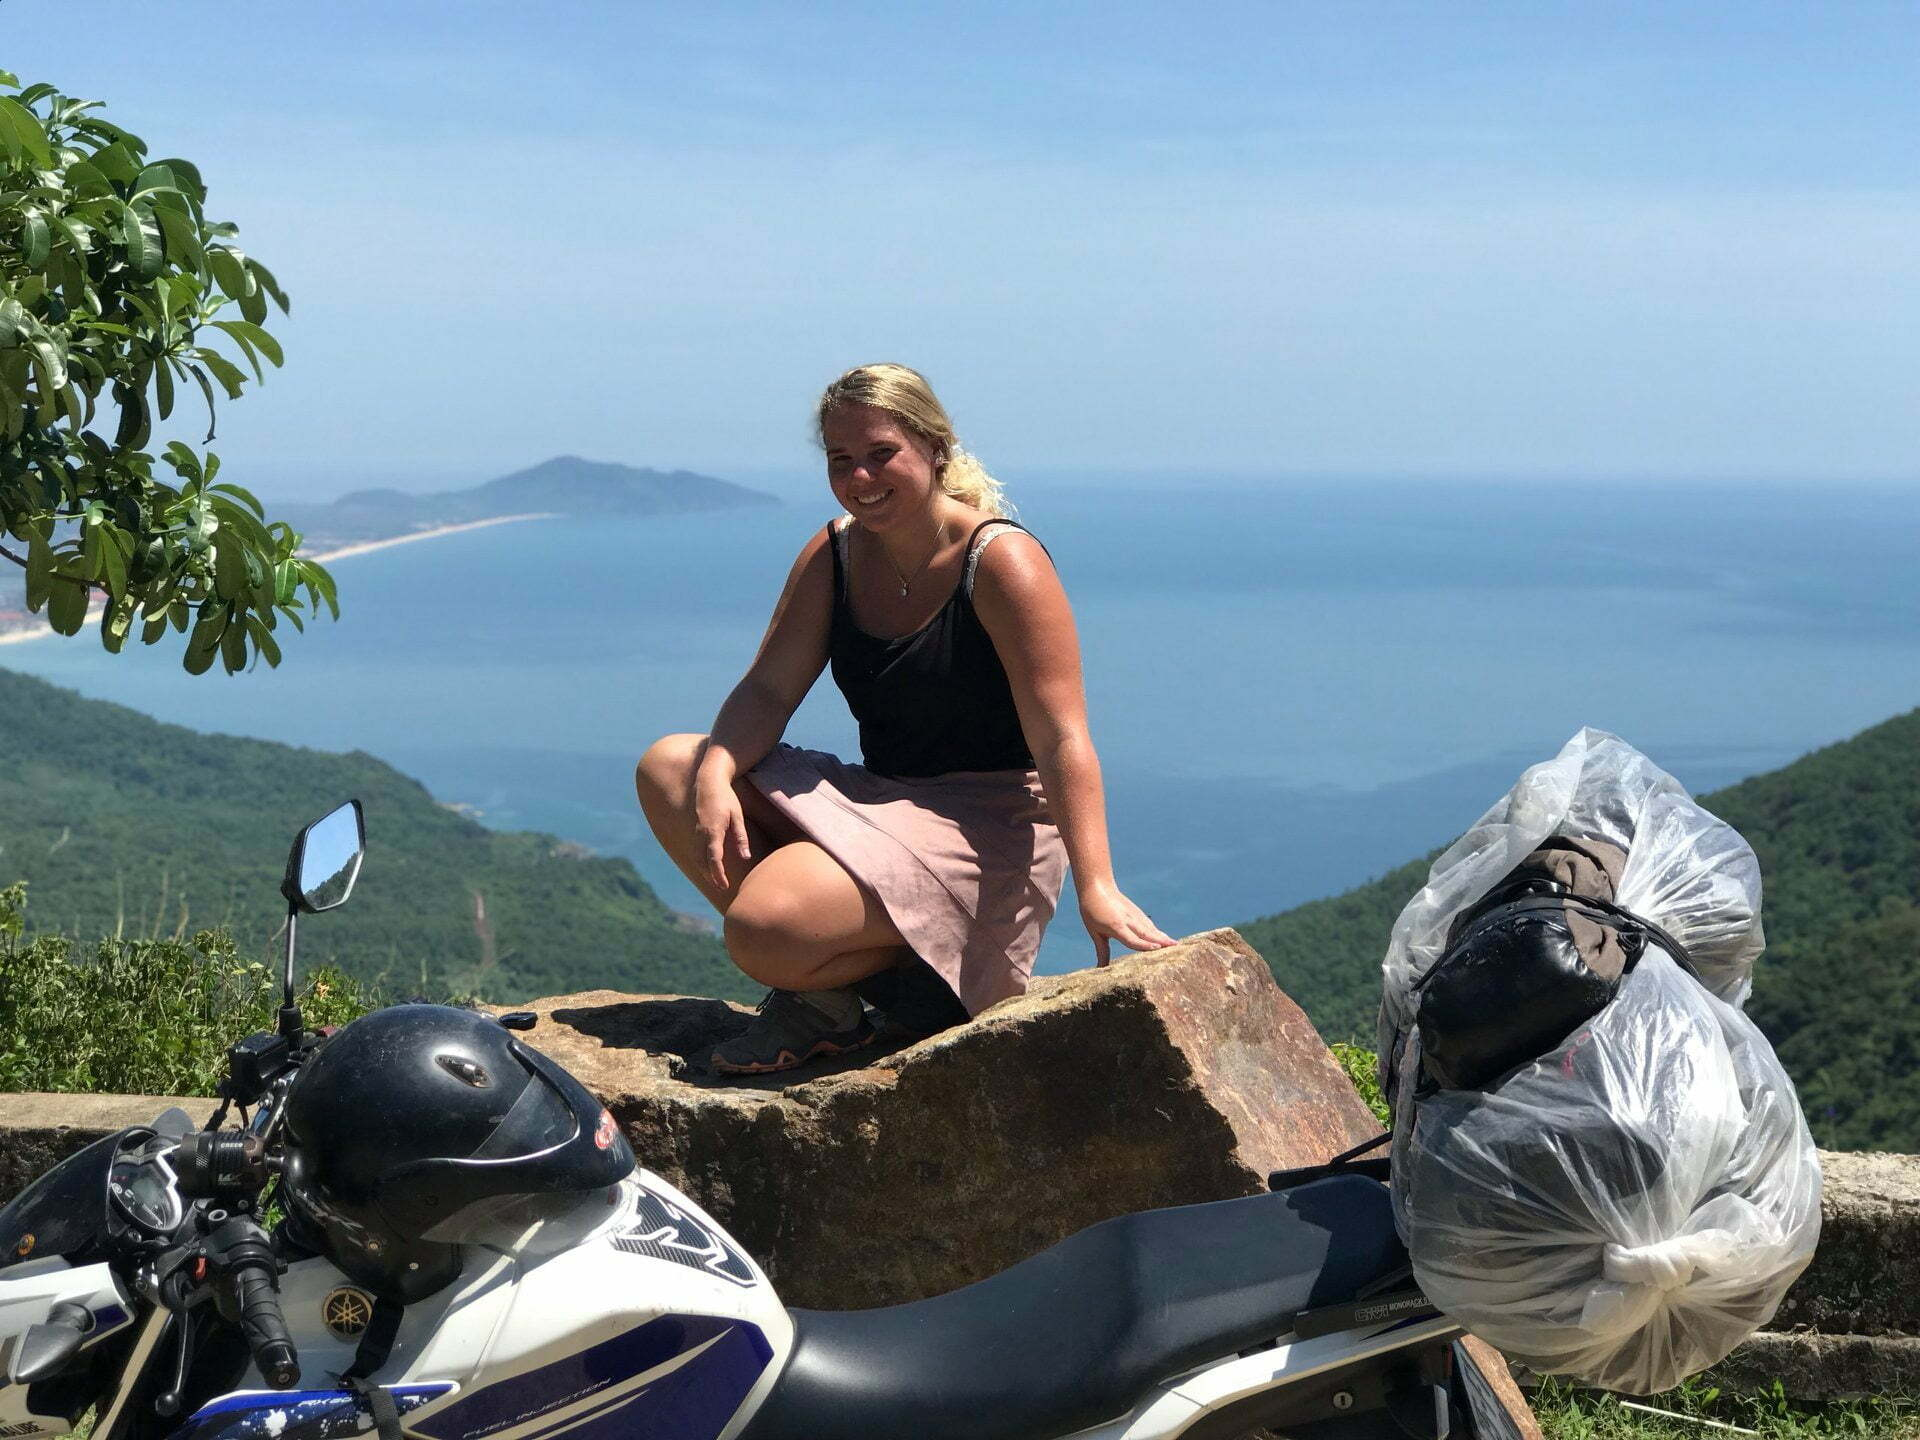 Hai Van Pass - Danang To Hue Day Trip - Danang Motorbike Adventure